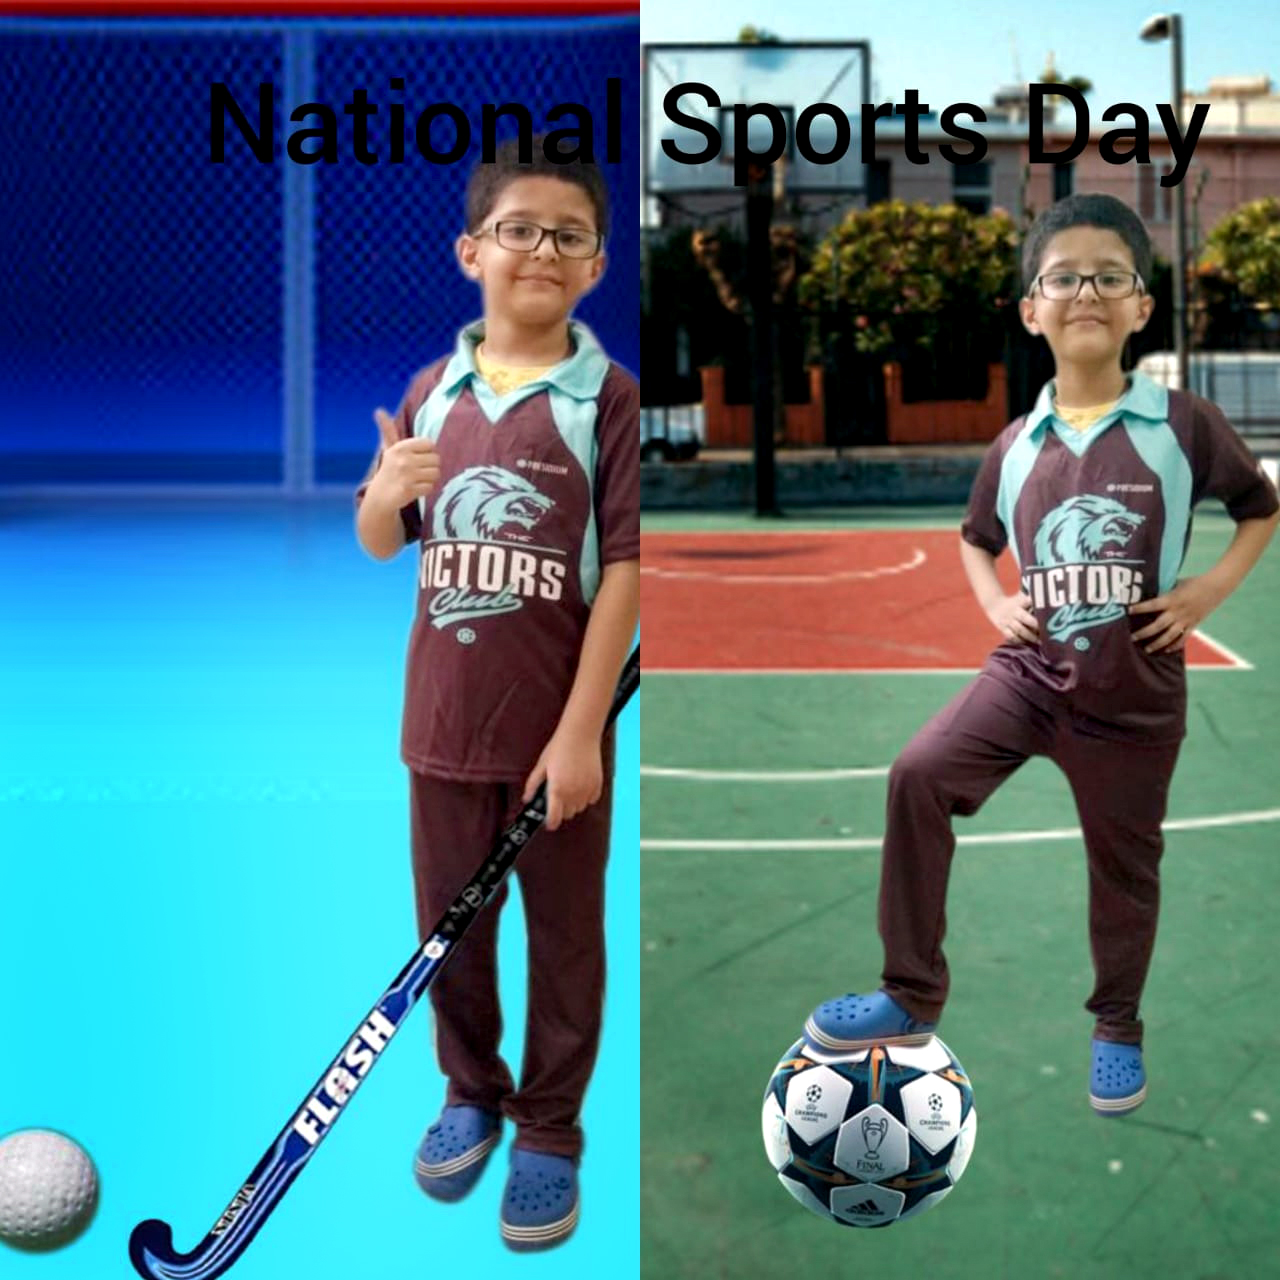 NATIONAL SPORTS DAY 2020